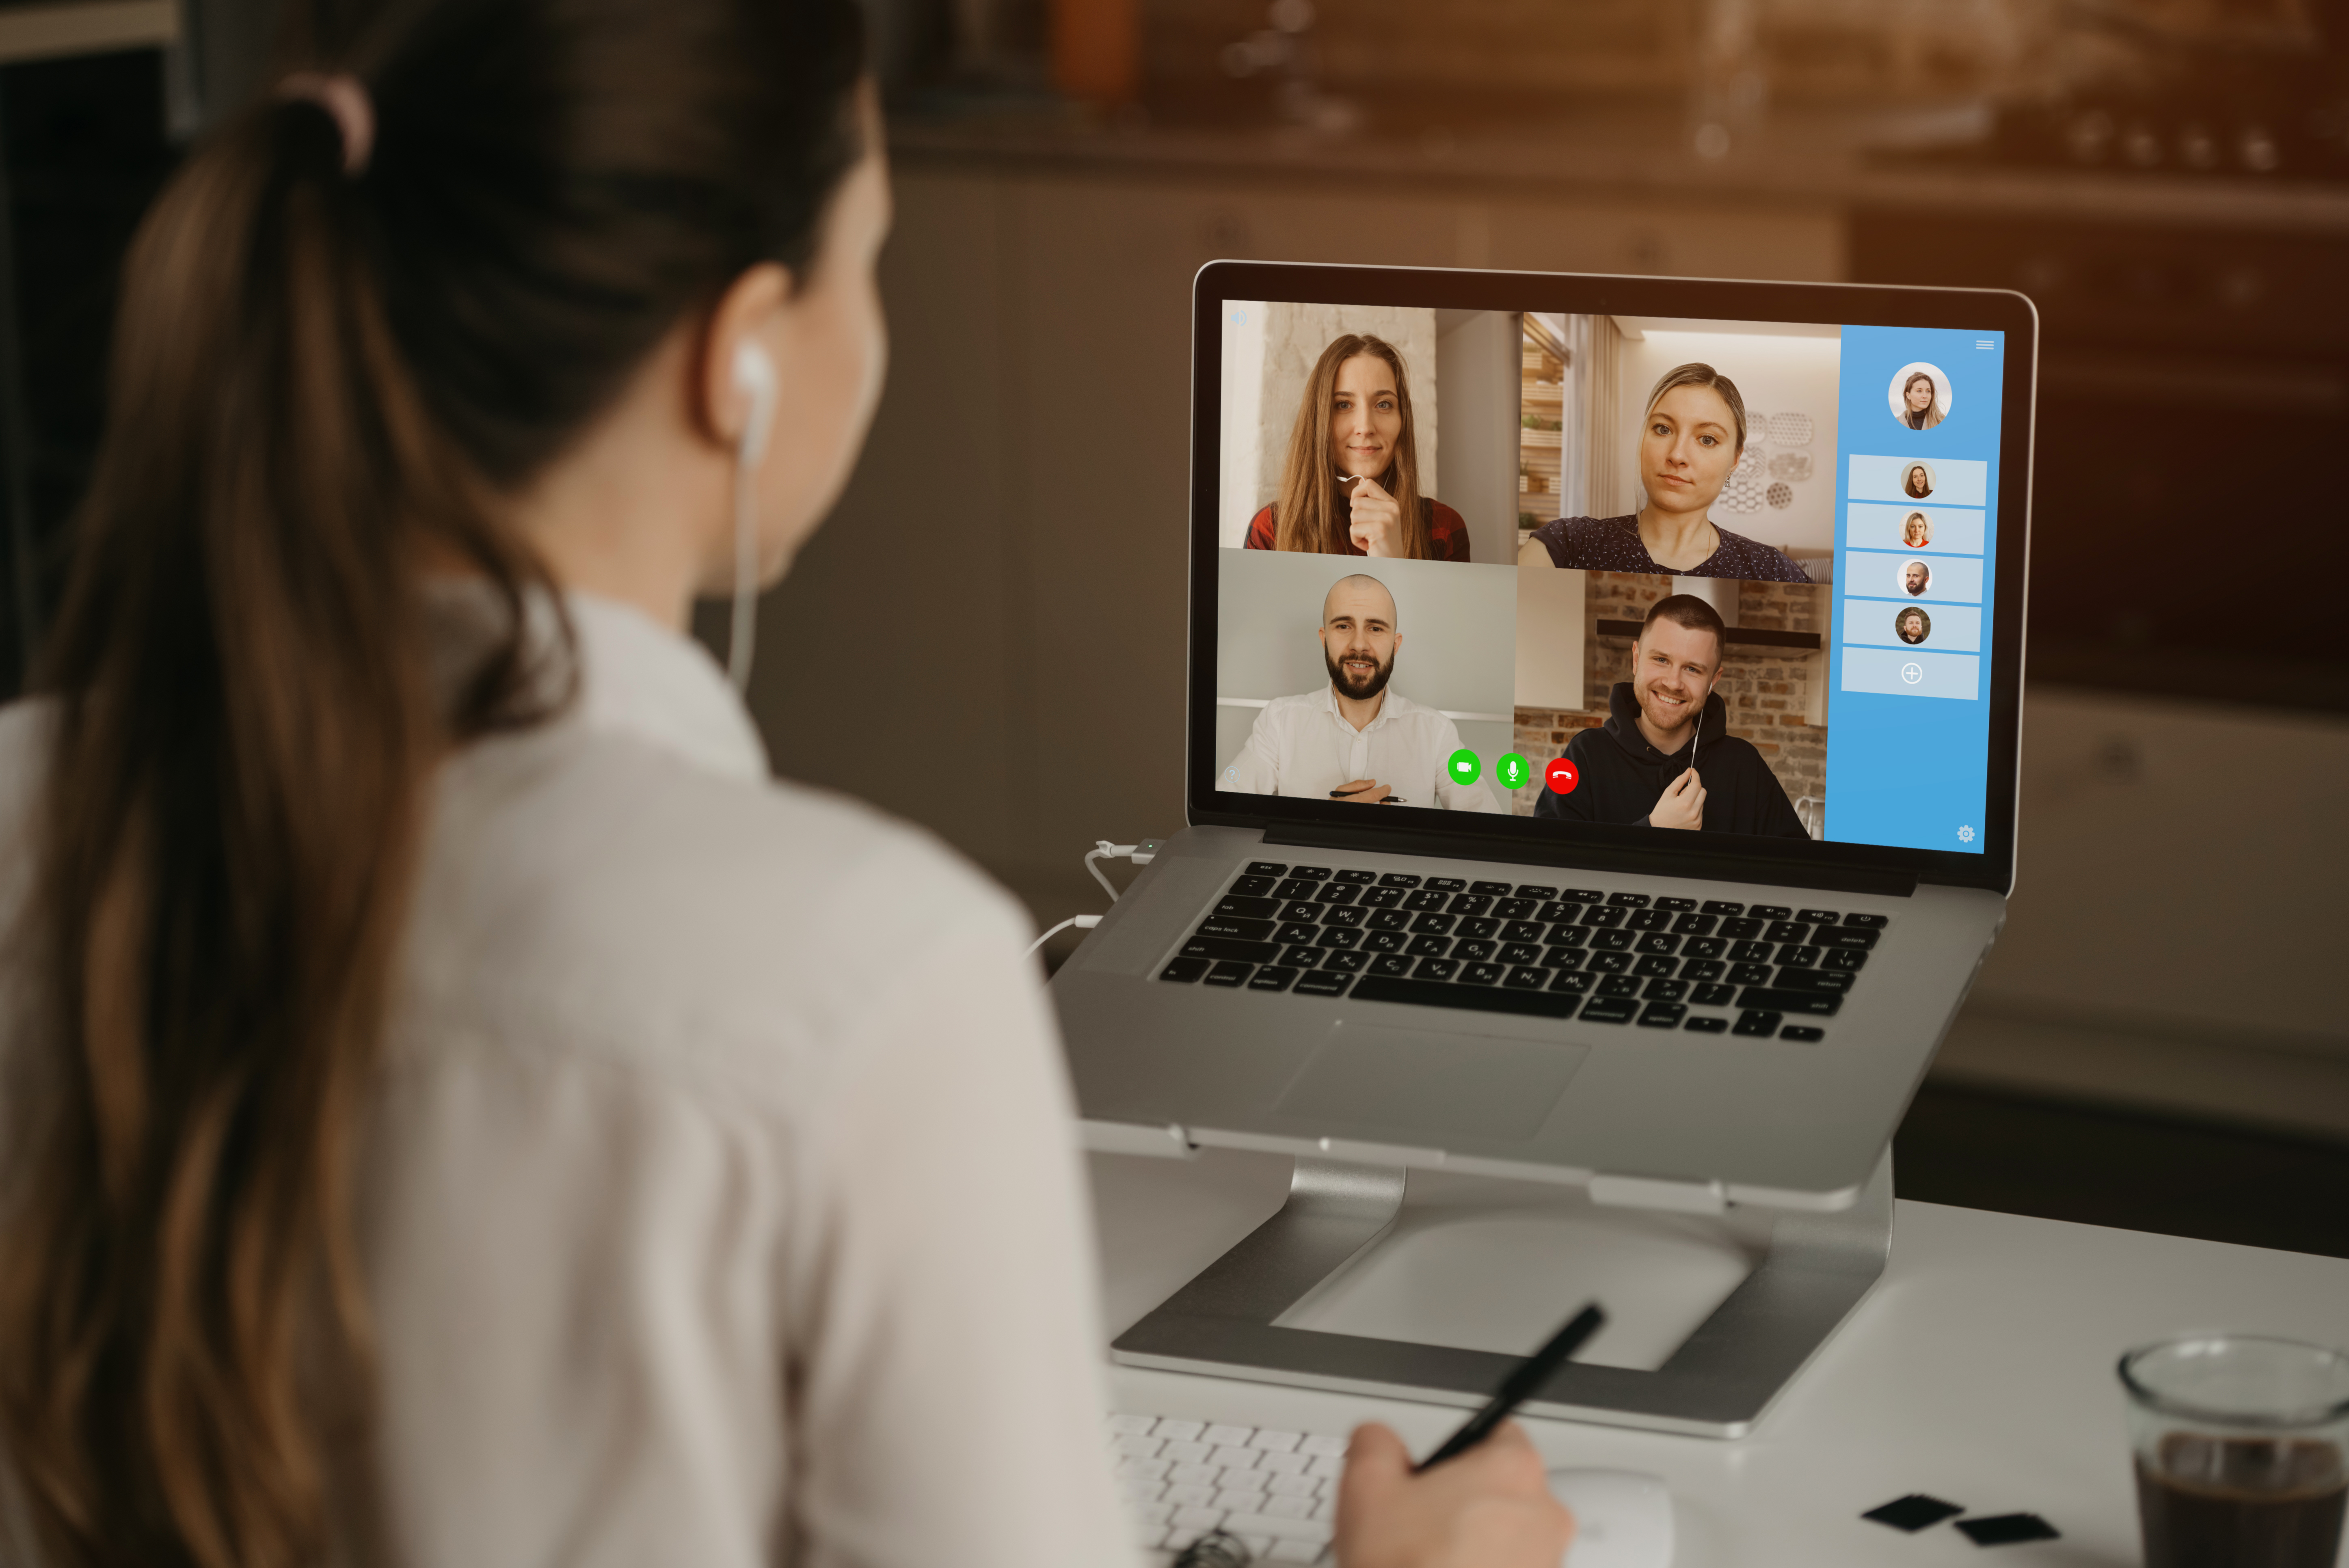 rearview-businesswoman-home-video-conference-with-her-colleagues-during-online-meeting-partners-video-call-multiethnic-business-team-having-discussion-online-meeting